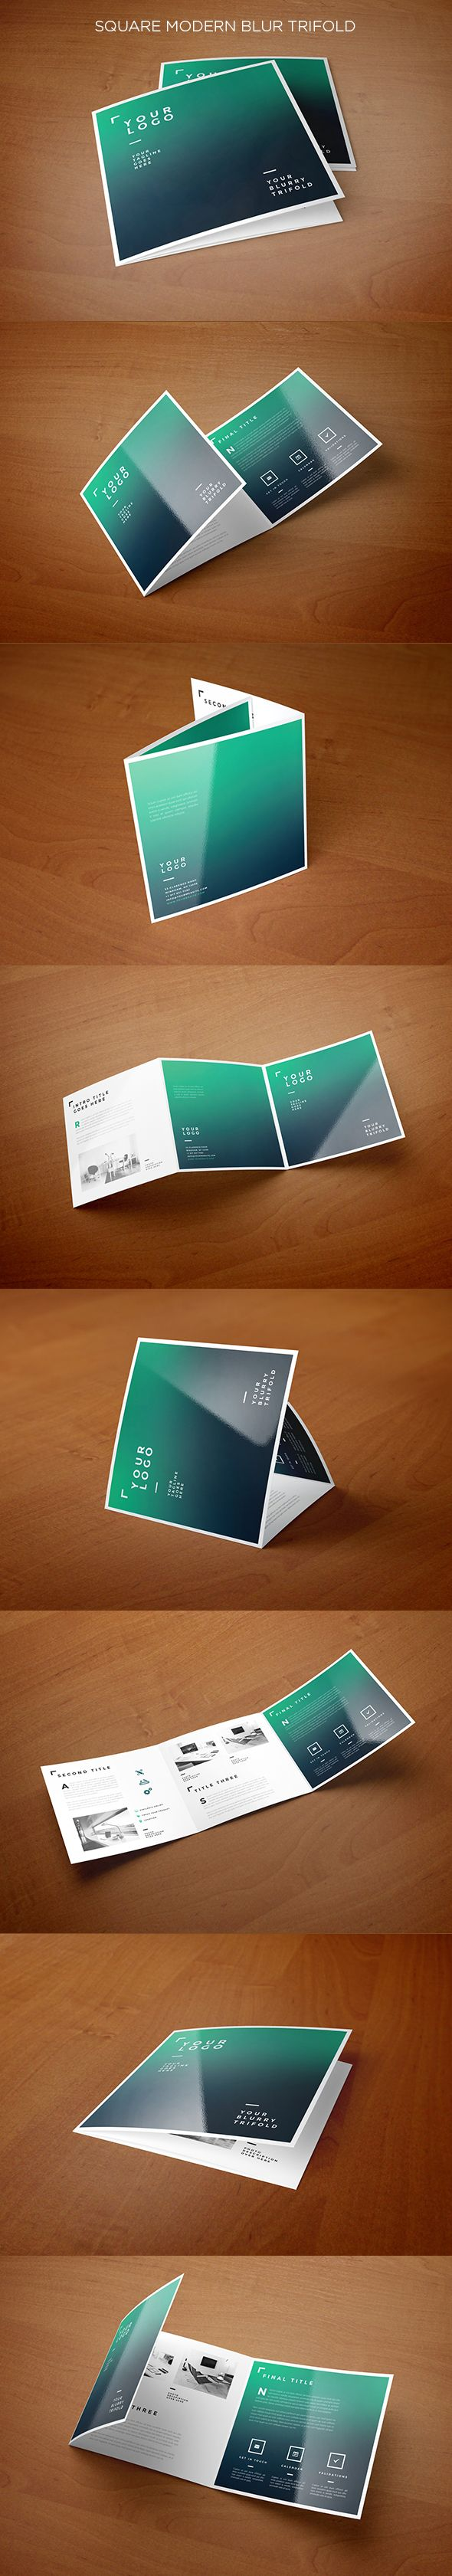 Square Modern Blur Trifold. Download here: https://vimeo.com/131077537 #trifold #brochure #blur